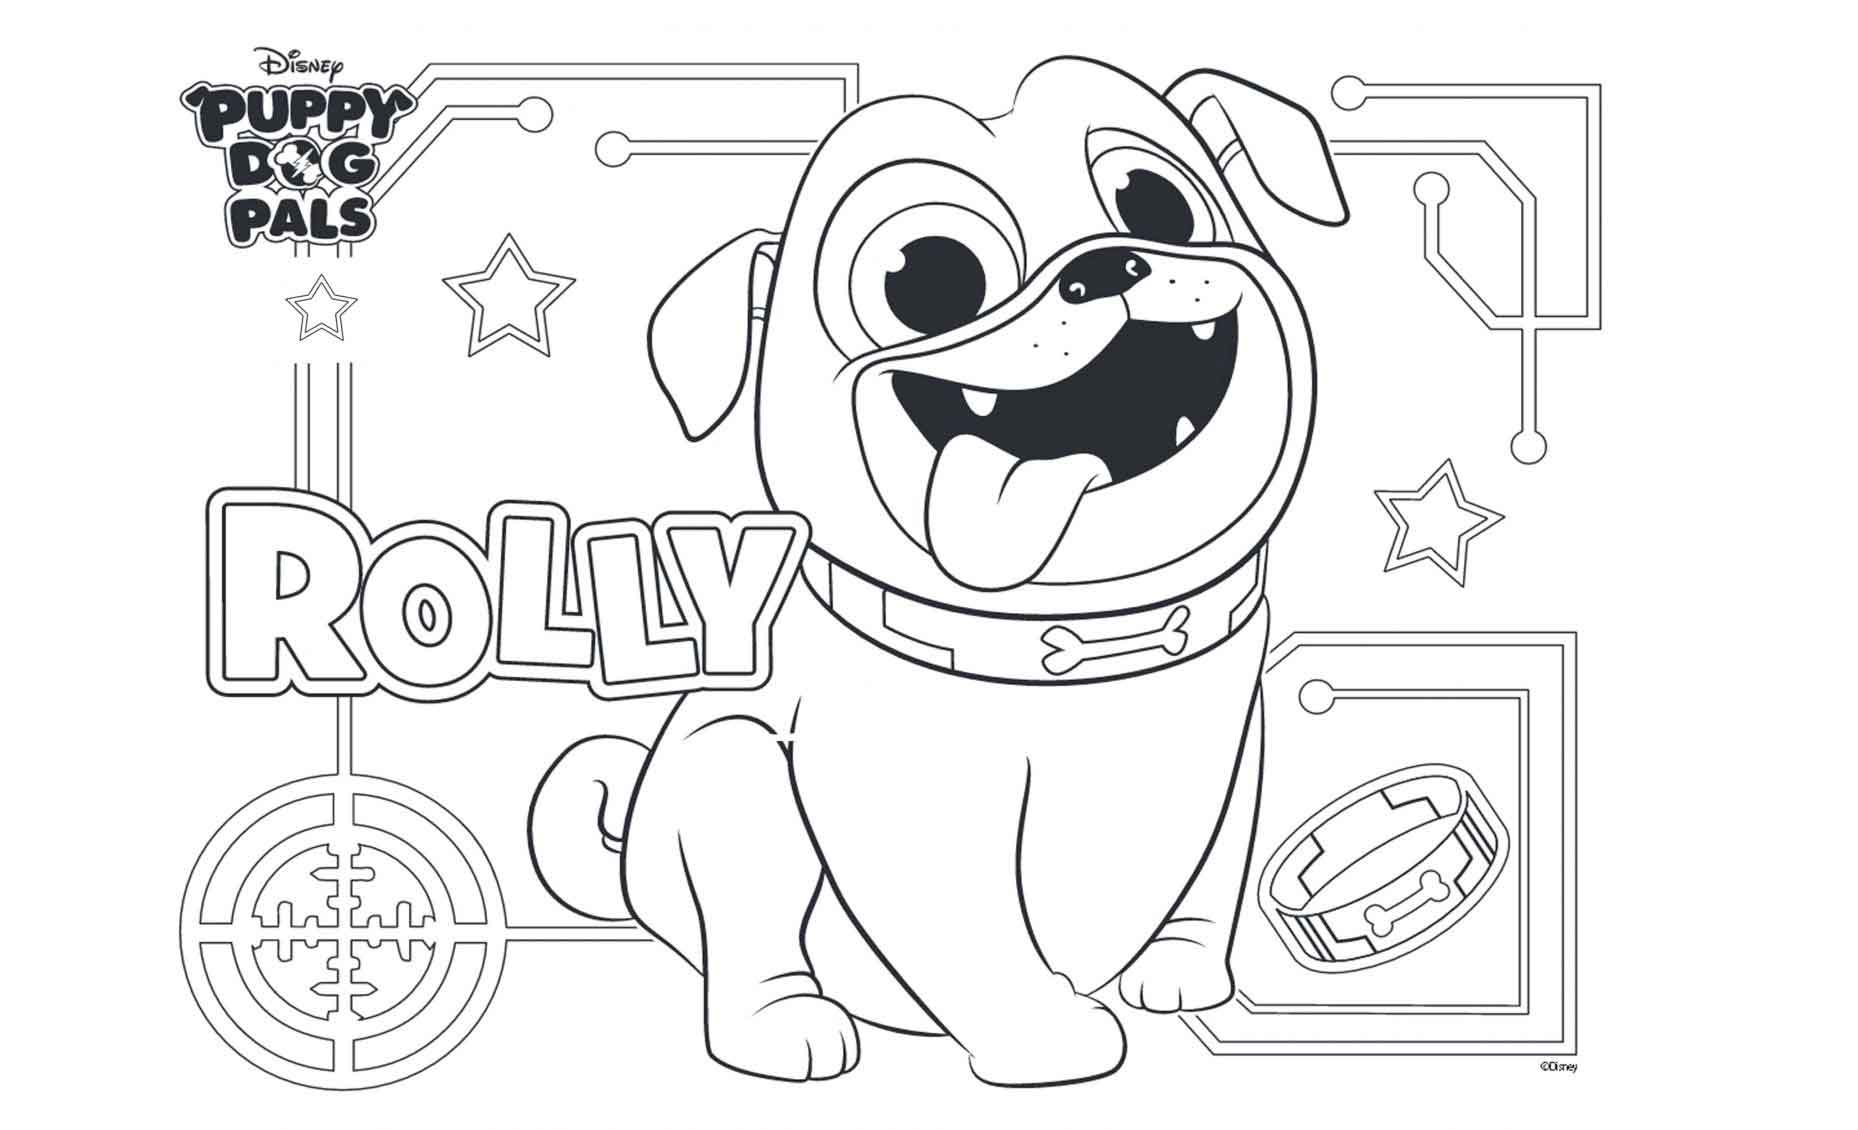 cute rolly puppy dog pals coloring free printable to print for kids ecolorings info plant coloring pages Puppy Dog Pals Coloring Page